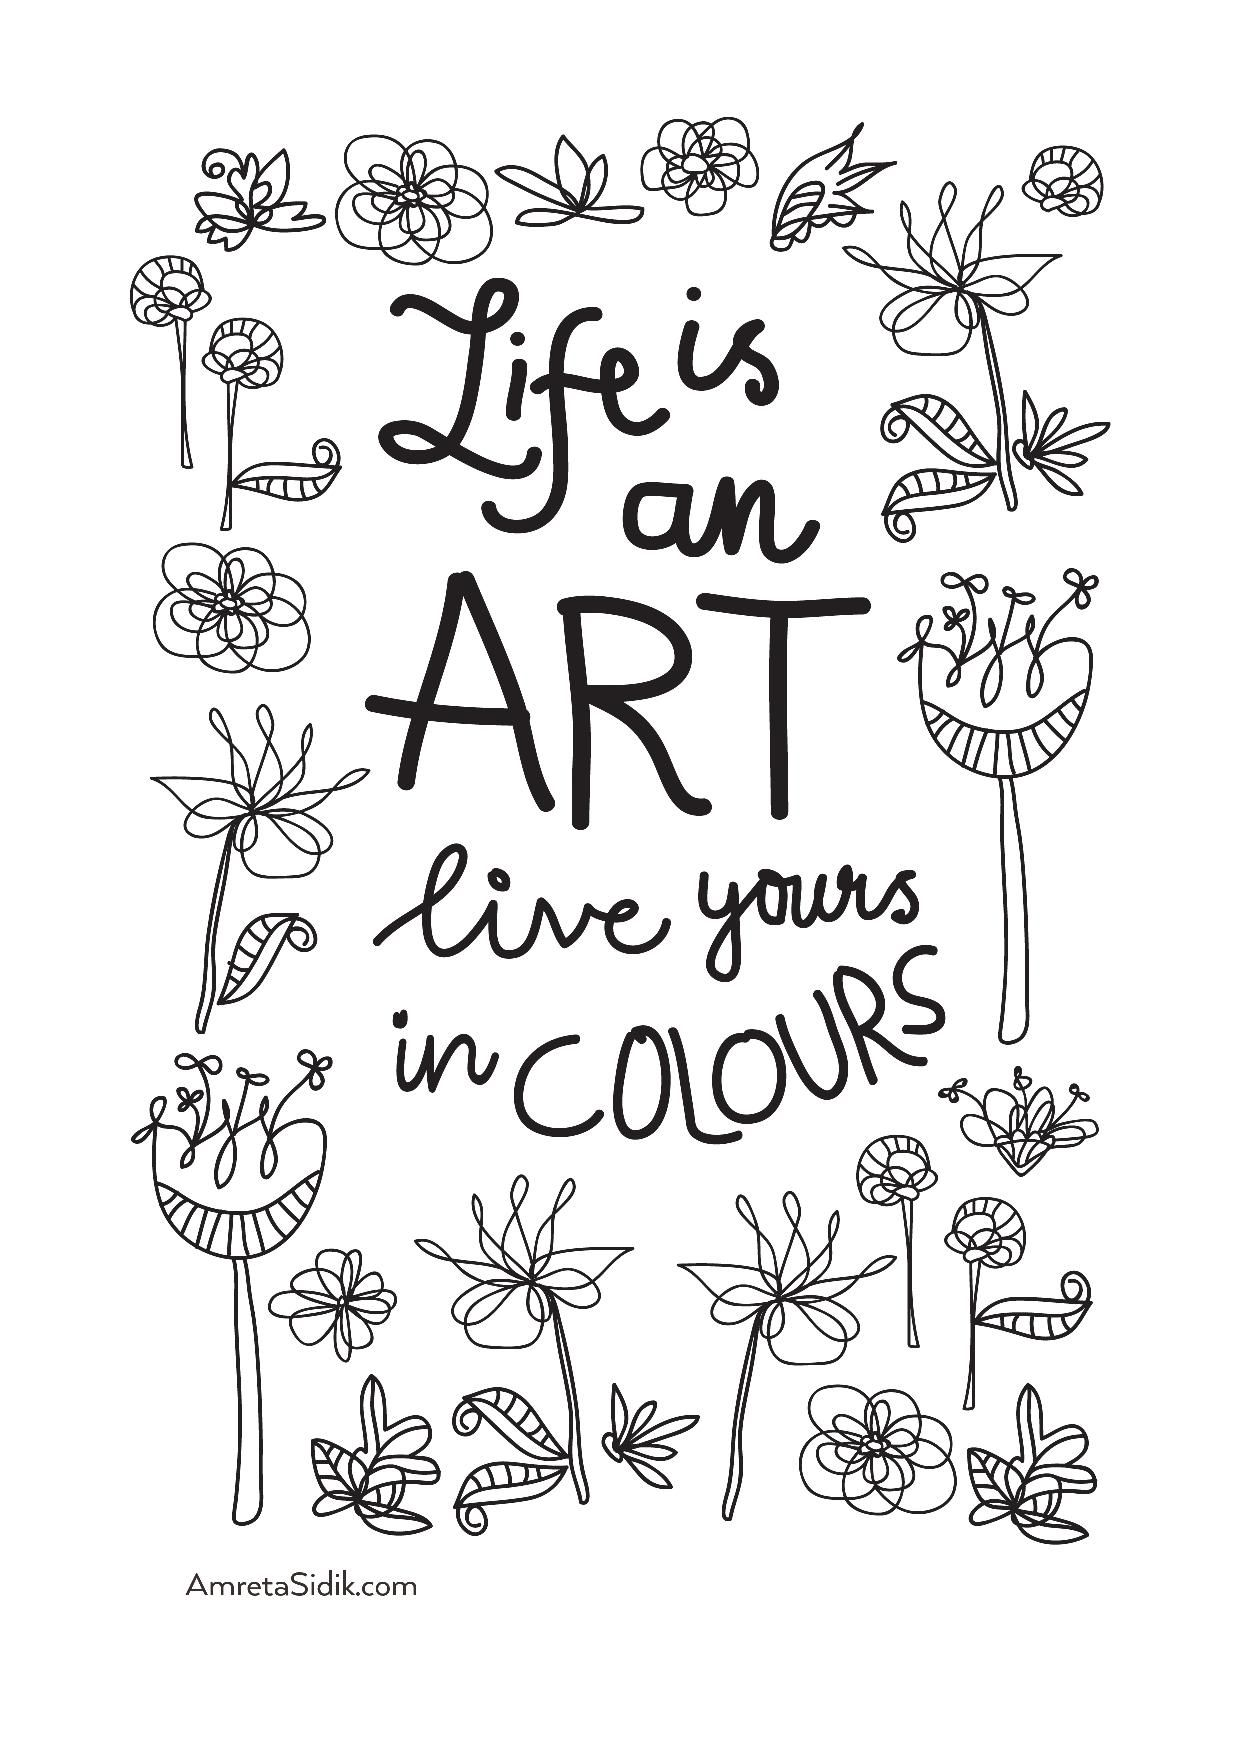 Stress reducing adult coloring pages free - Coloring Adult Life Is Art From The Gallery Zen